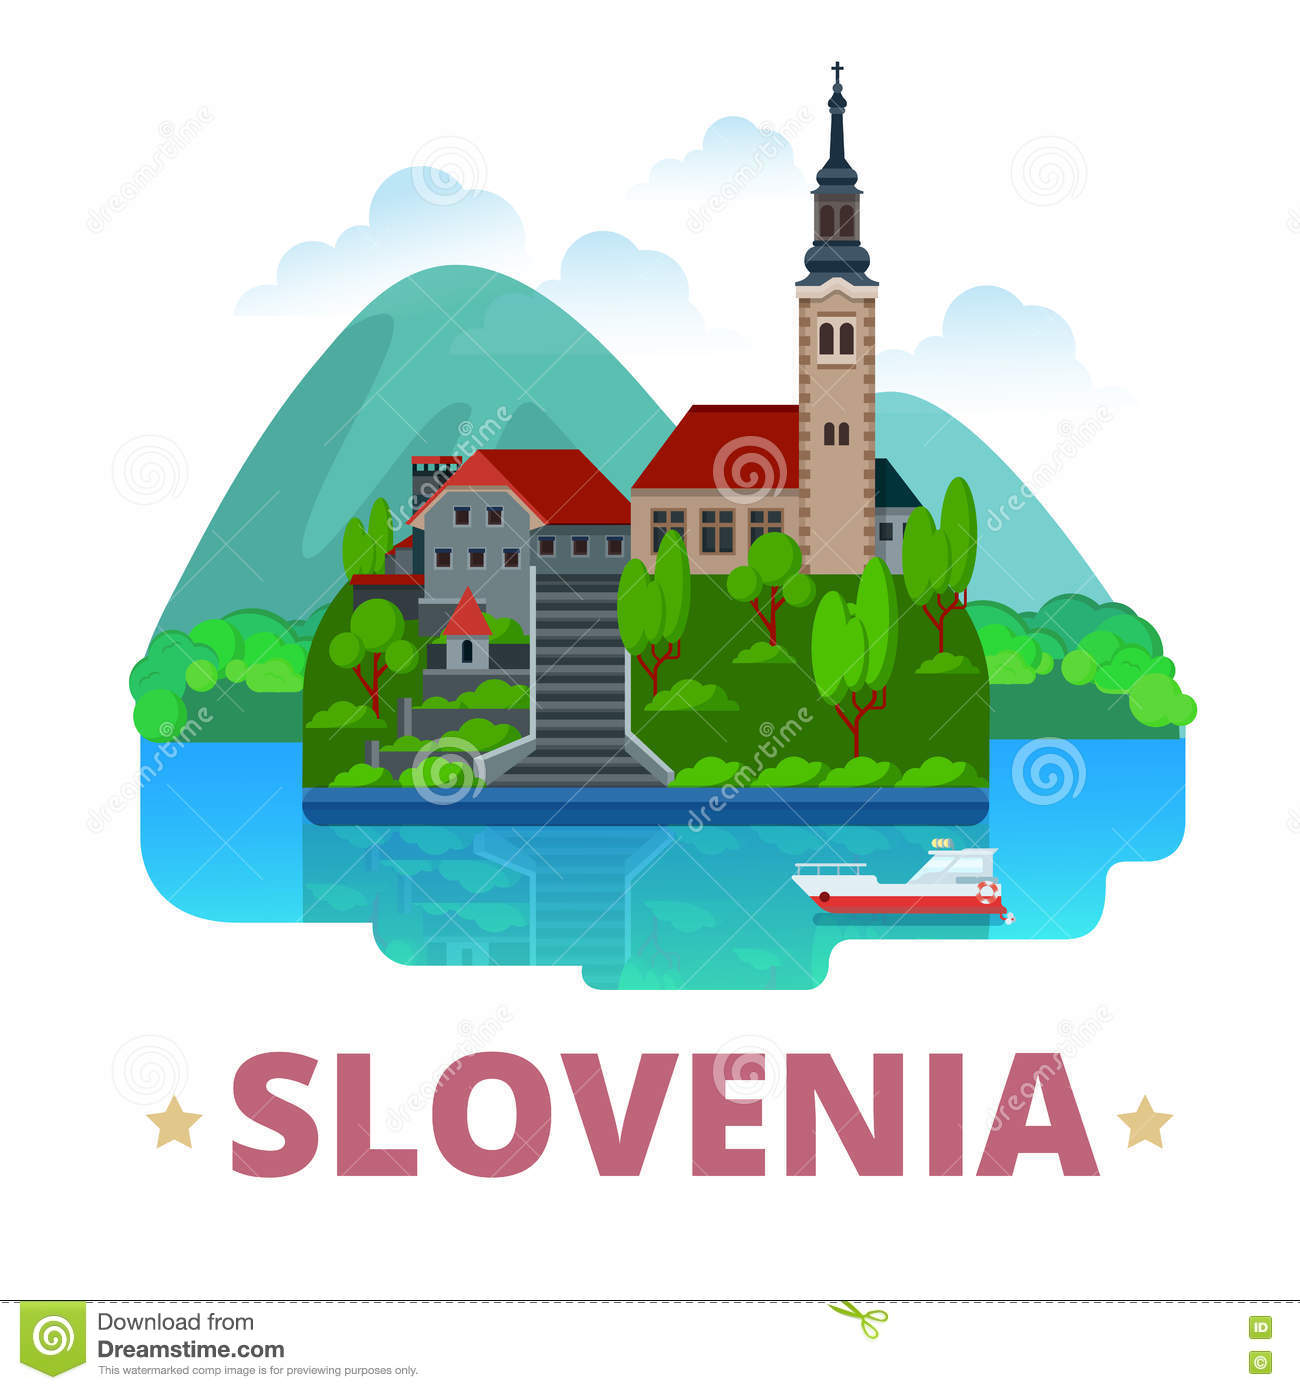 Slovenia clipart #1, Download drawings